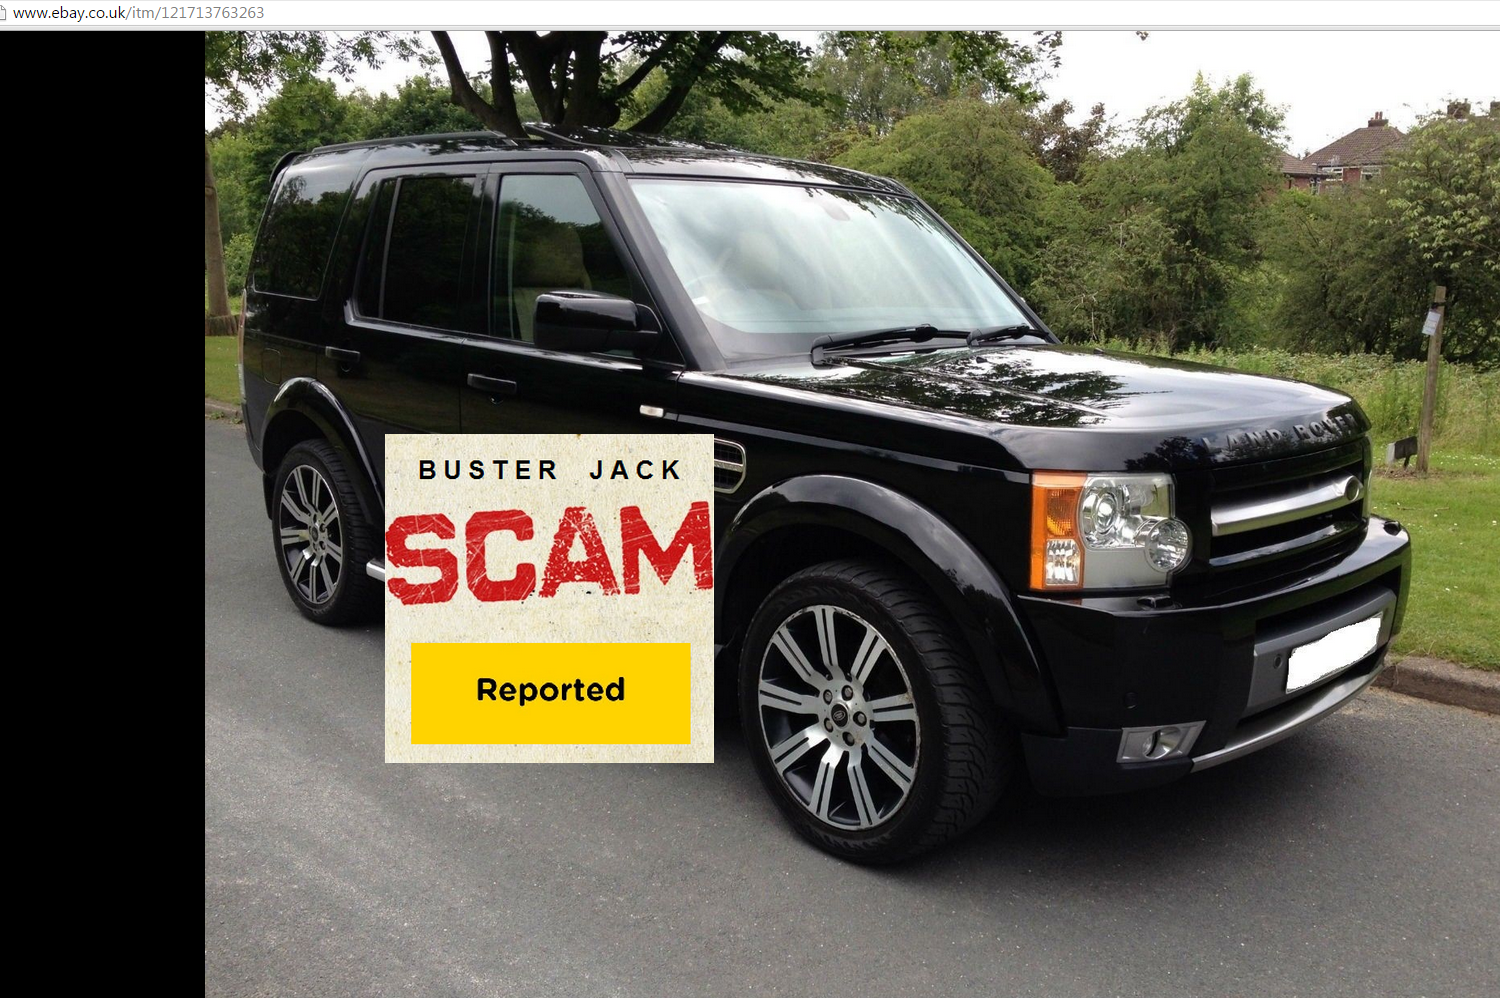 EBAY SCAM : 2OO5 LAND ROVER DISCOVERY 3   EO05ENF - Fraud - EO05 ENF